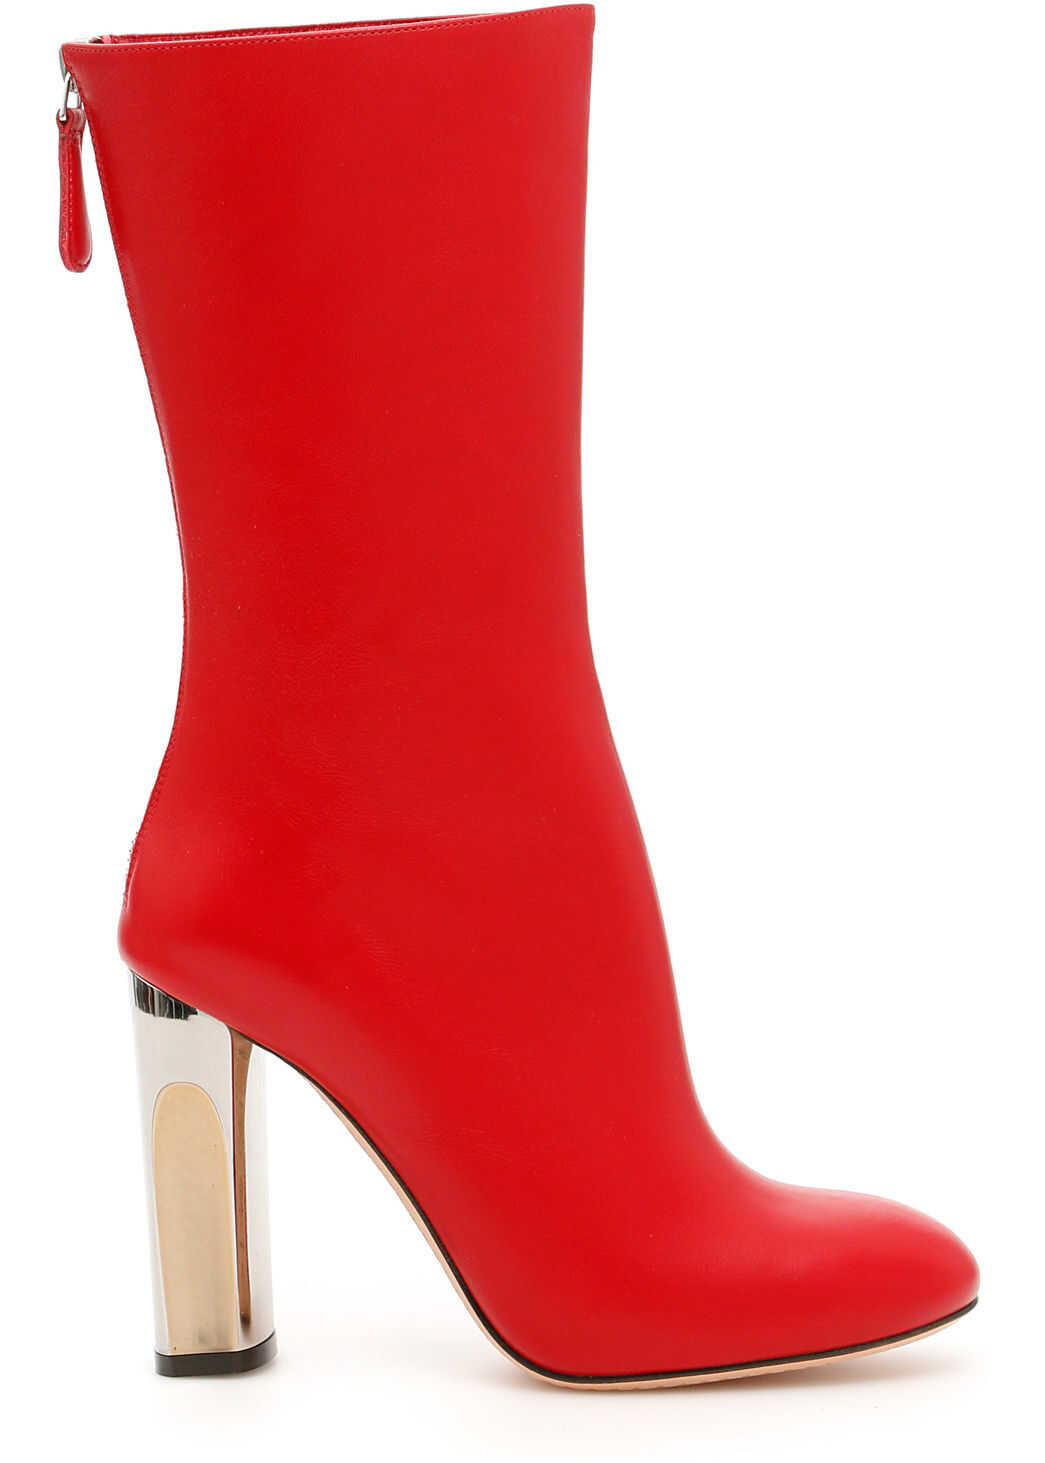 Alexander McQueen Leather Boots DEEP RED 183